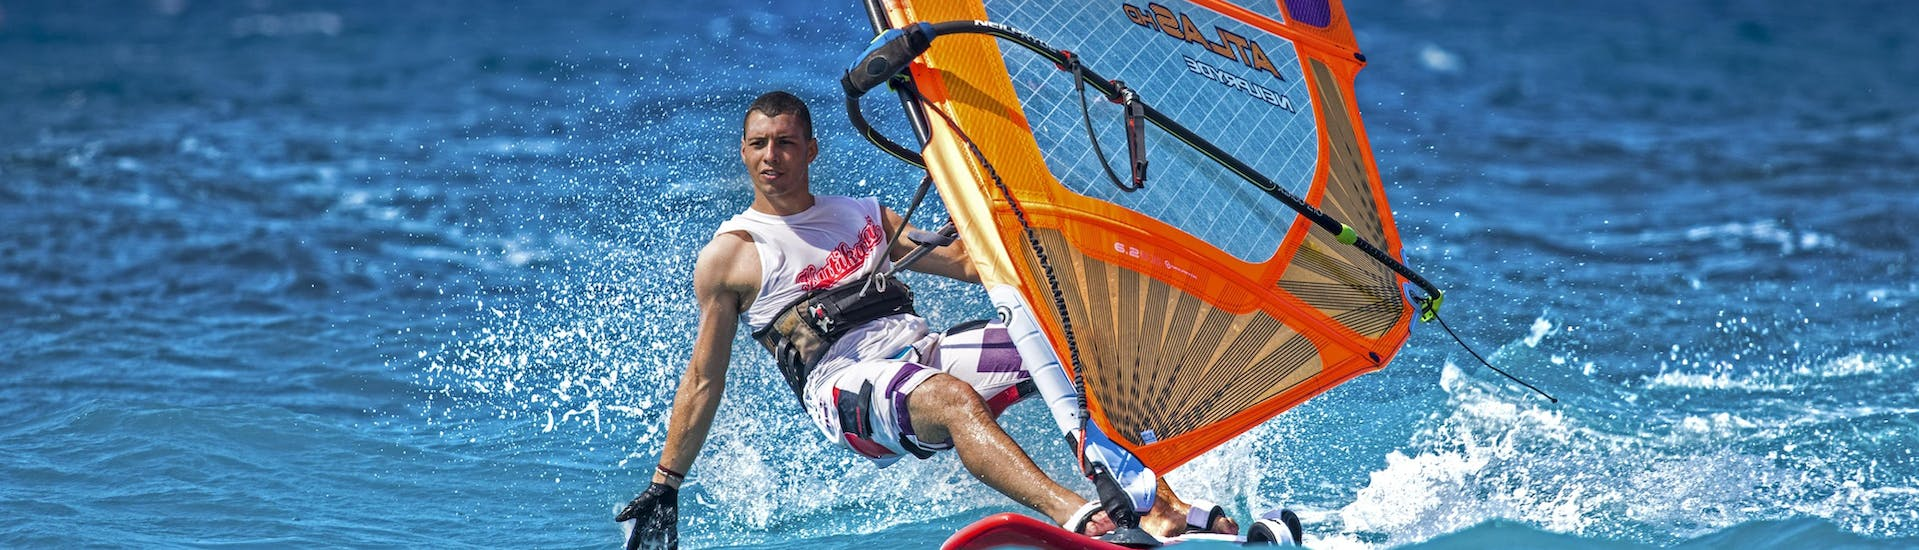 Private Windsurfing Lessons for Kids & Adults - Advanced